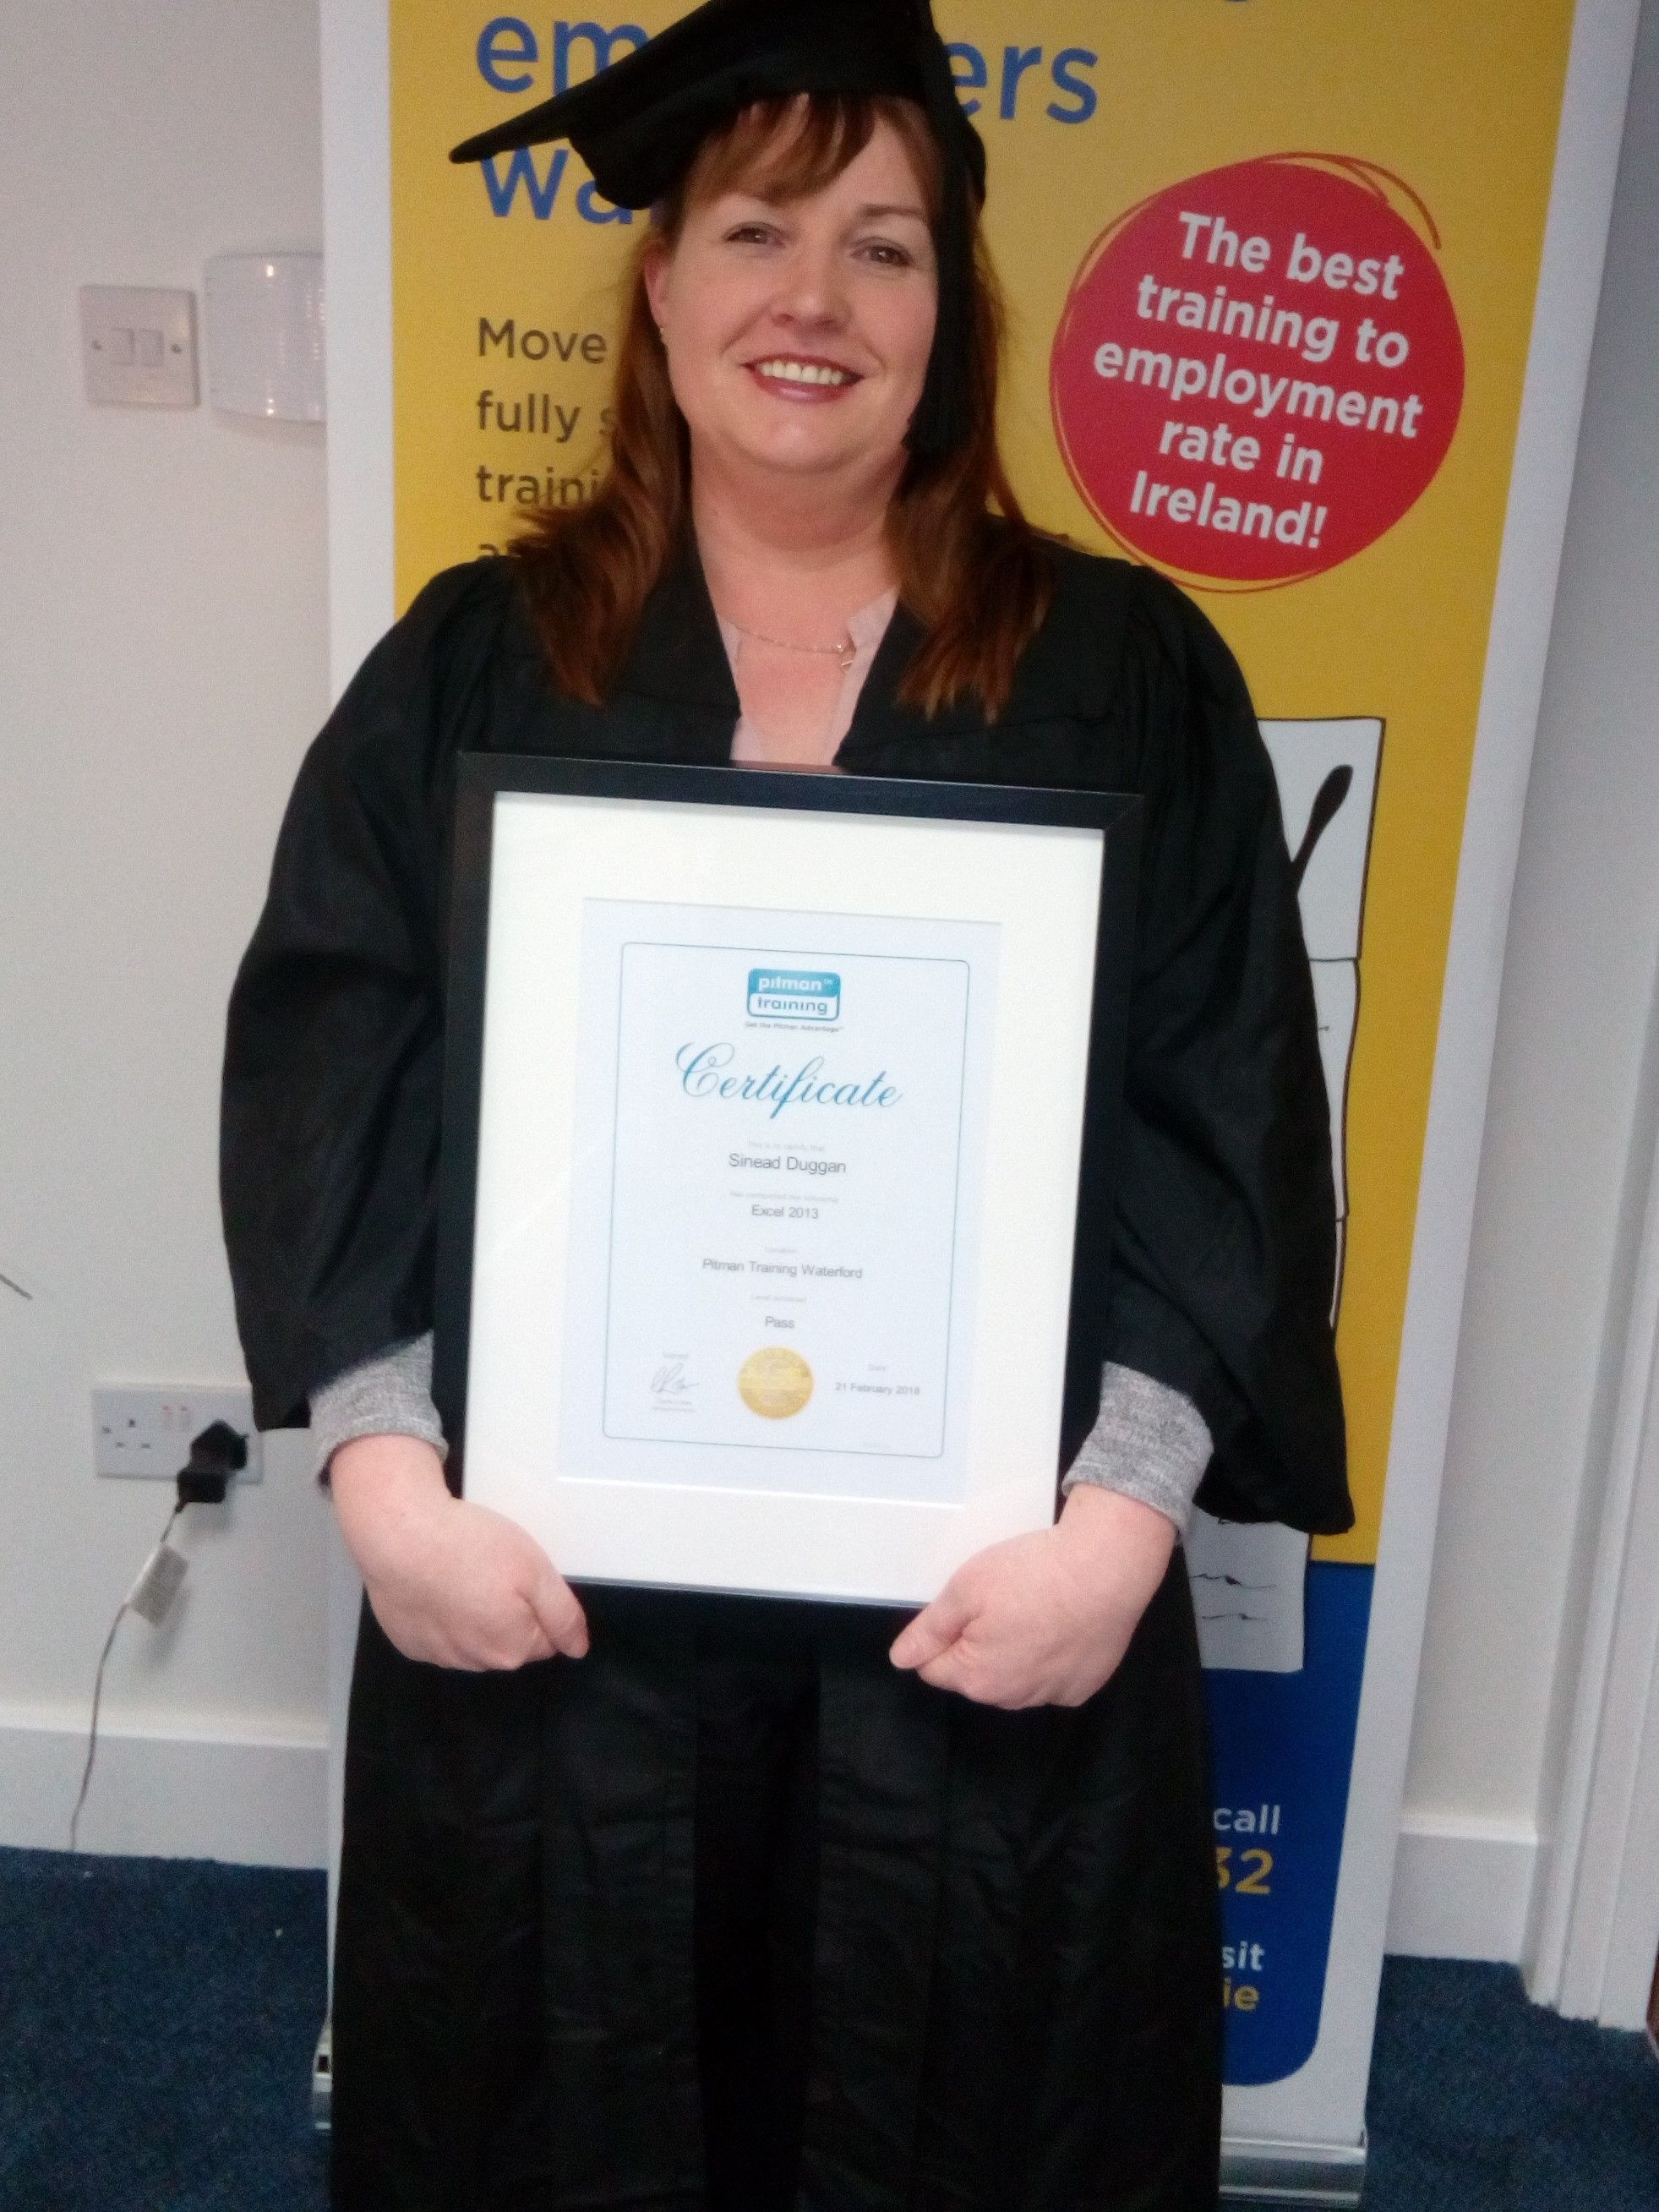 microsoft excel course graduate from pitman training in waterford